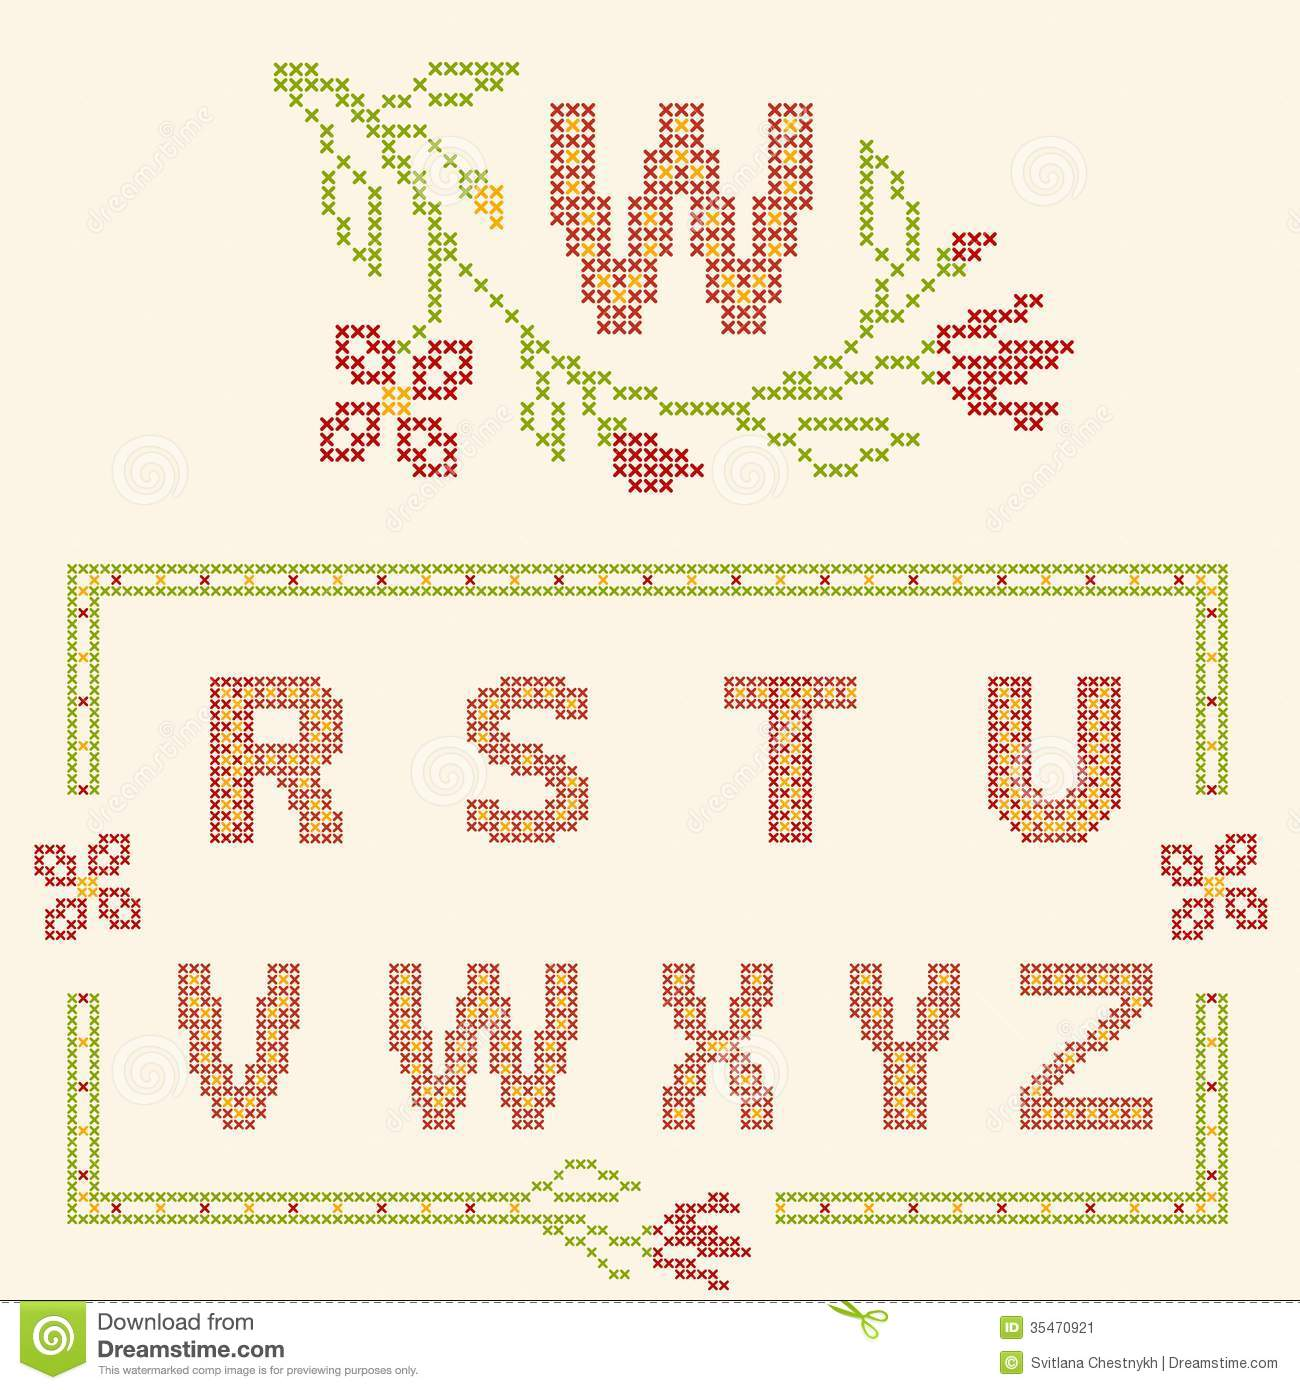 3d3ad14cfde Cross-stitch Embroidery In Ukrainian Style Stock Vector ...